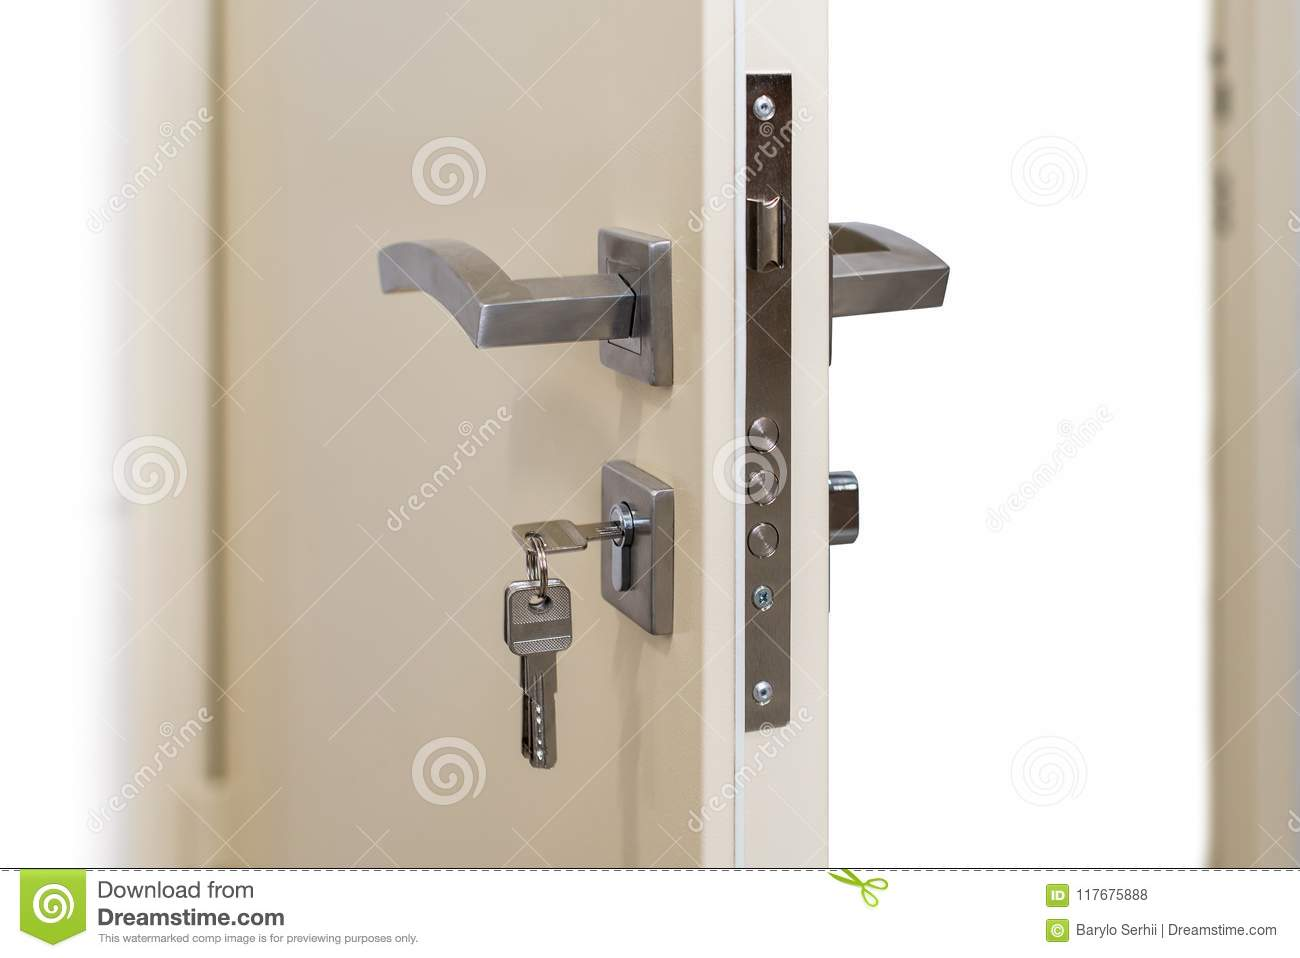 Open Armored Door Door Lock Metal Door Modern Interior Design